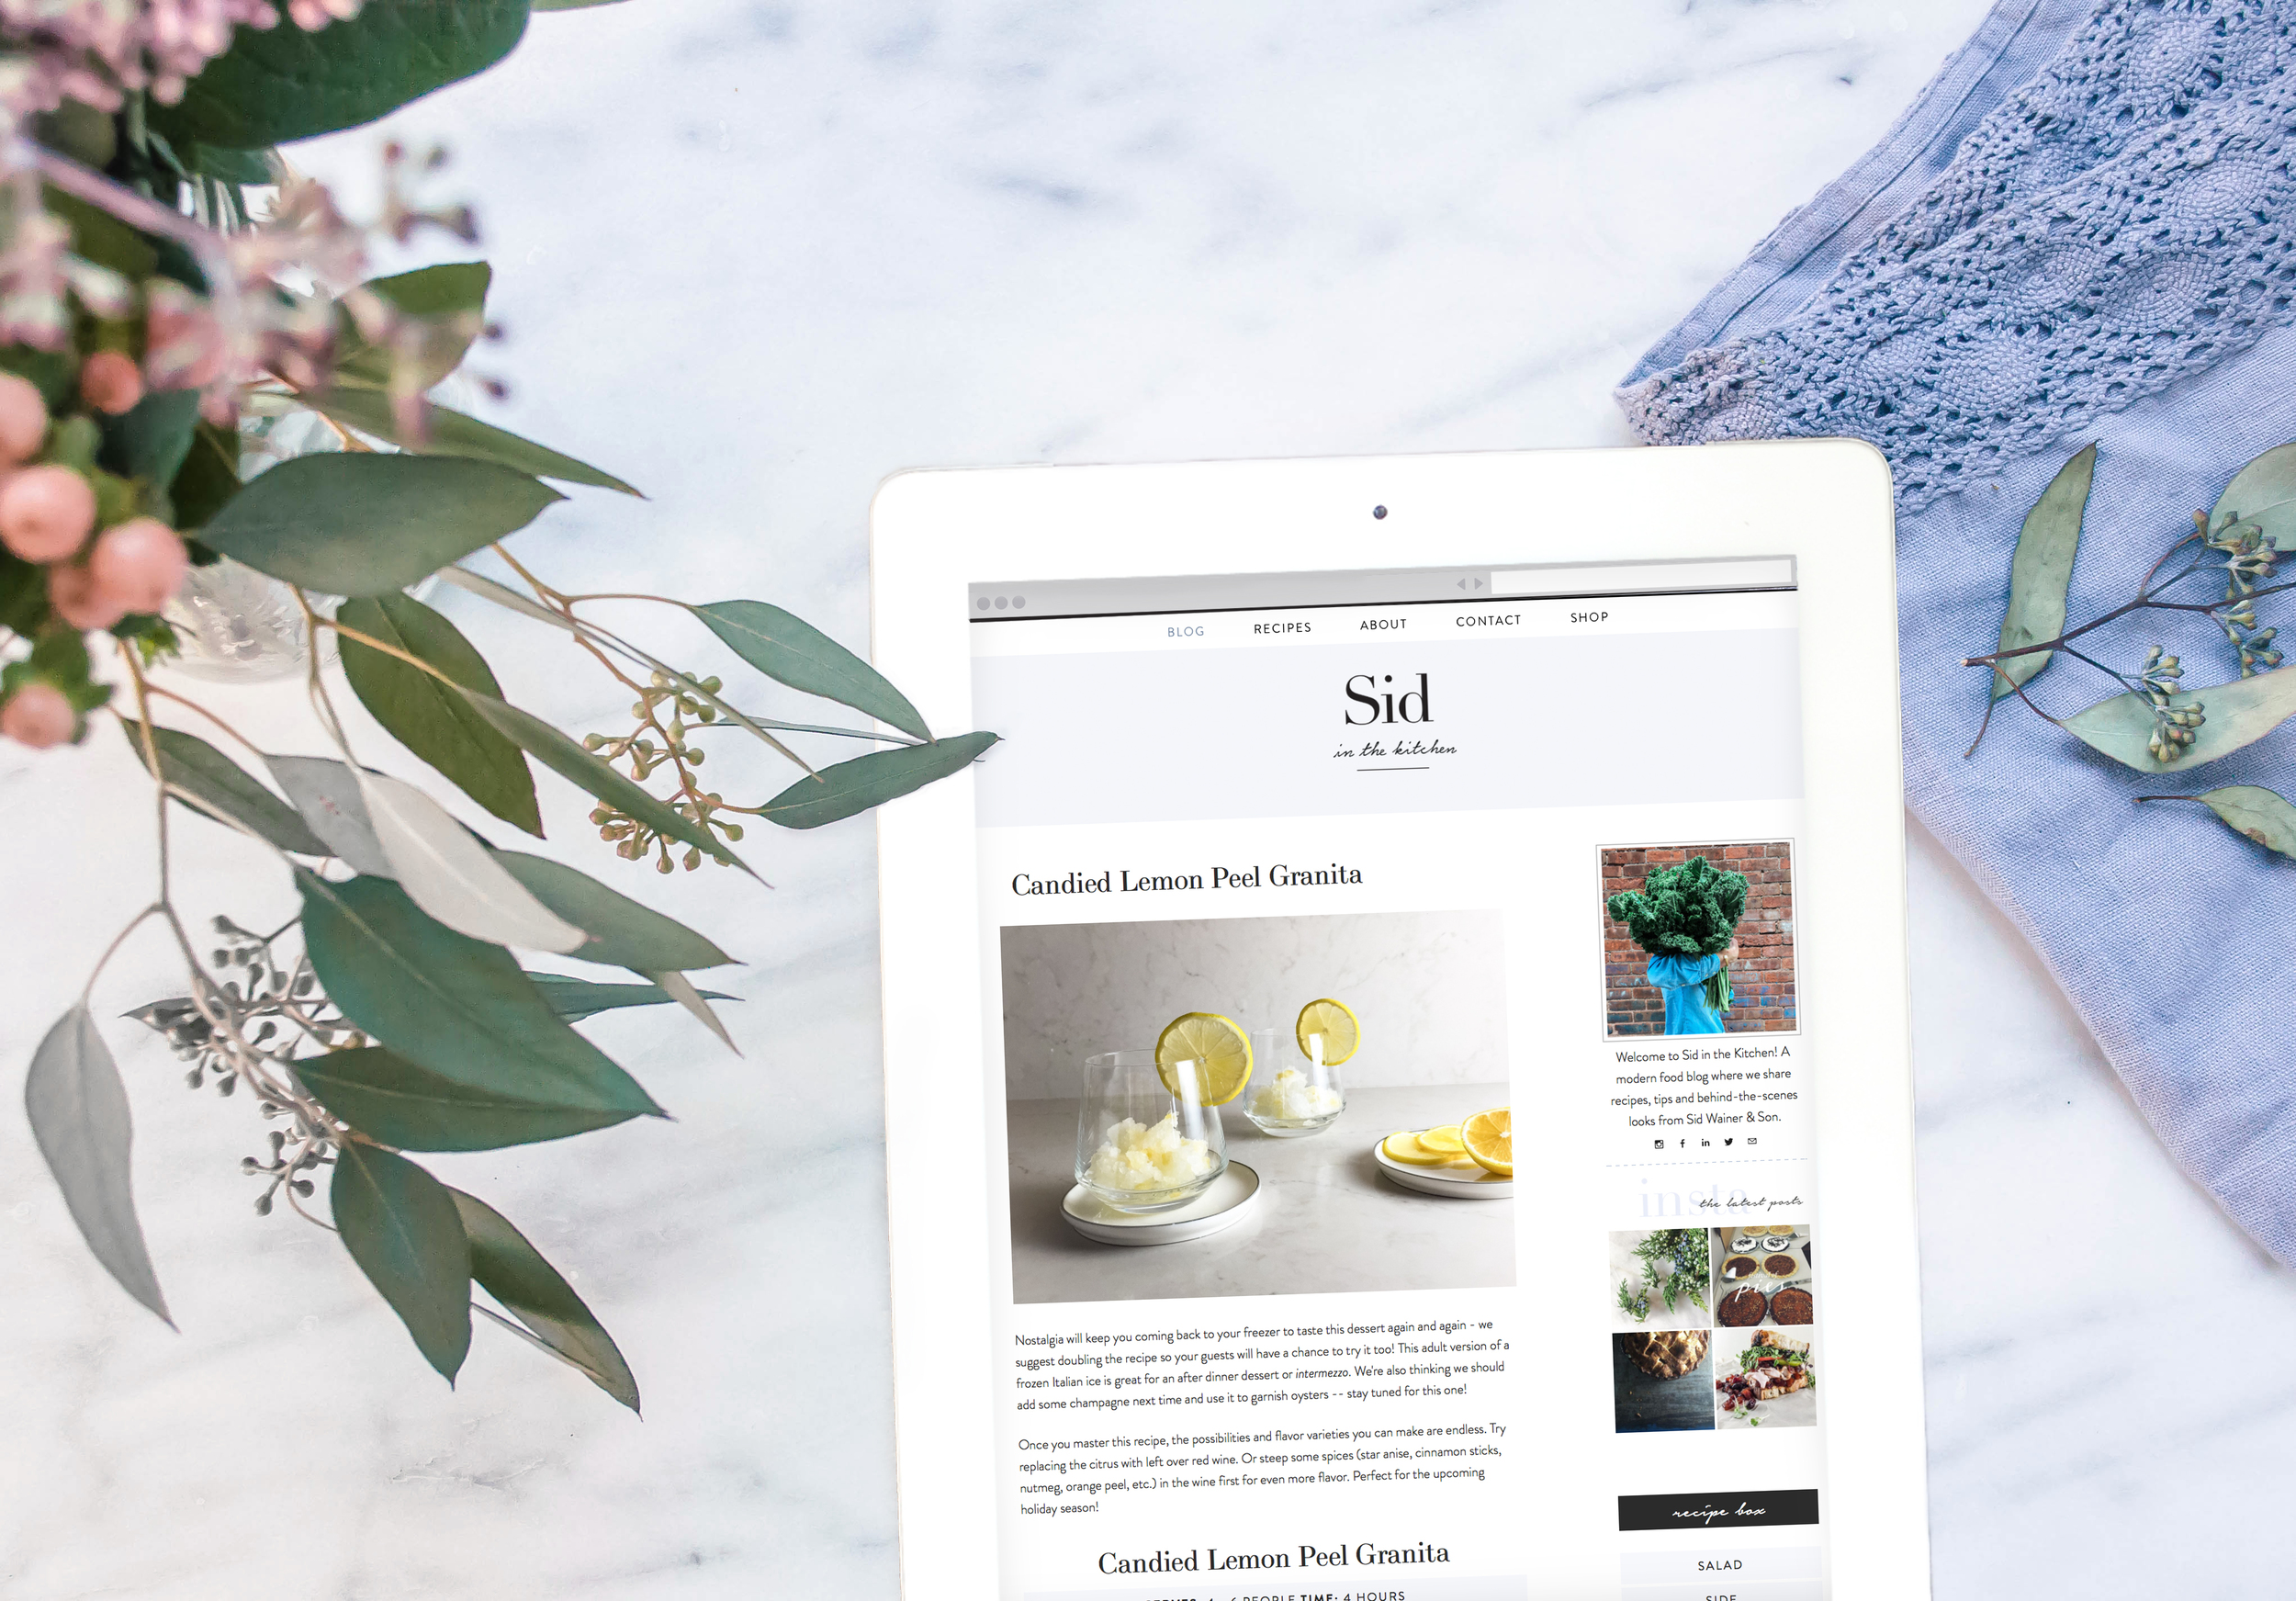 Meg+Summerfeild+Studio+-+Branding+and+Squarespace+Expertise+-+Sid+in+the+Kitchen+a+Gourmet+Food+Blog+by+Sid+Wainer+and+Son.jpg